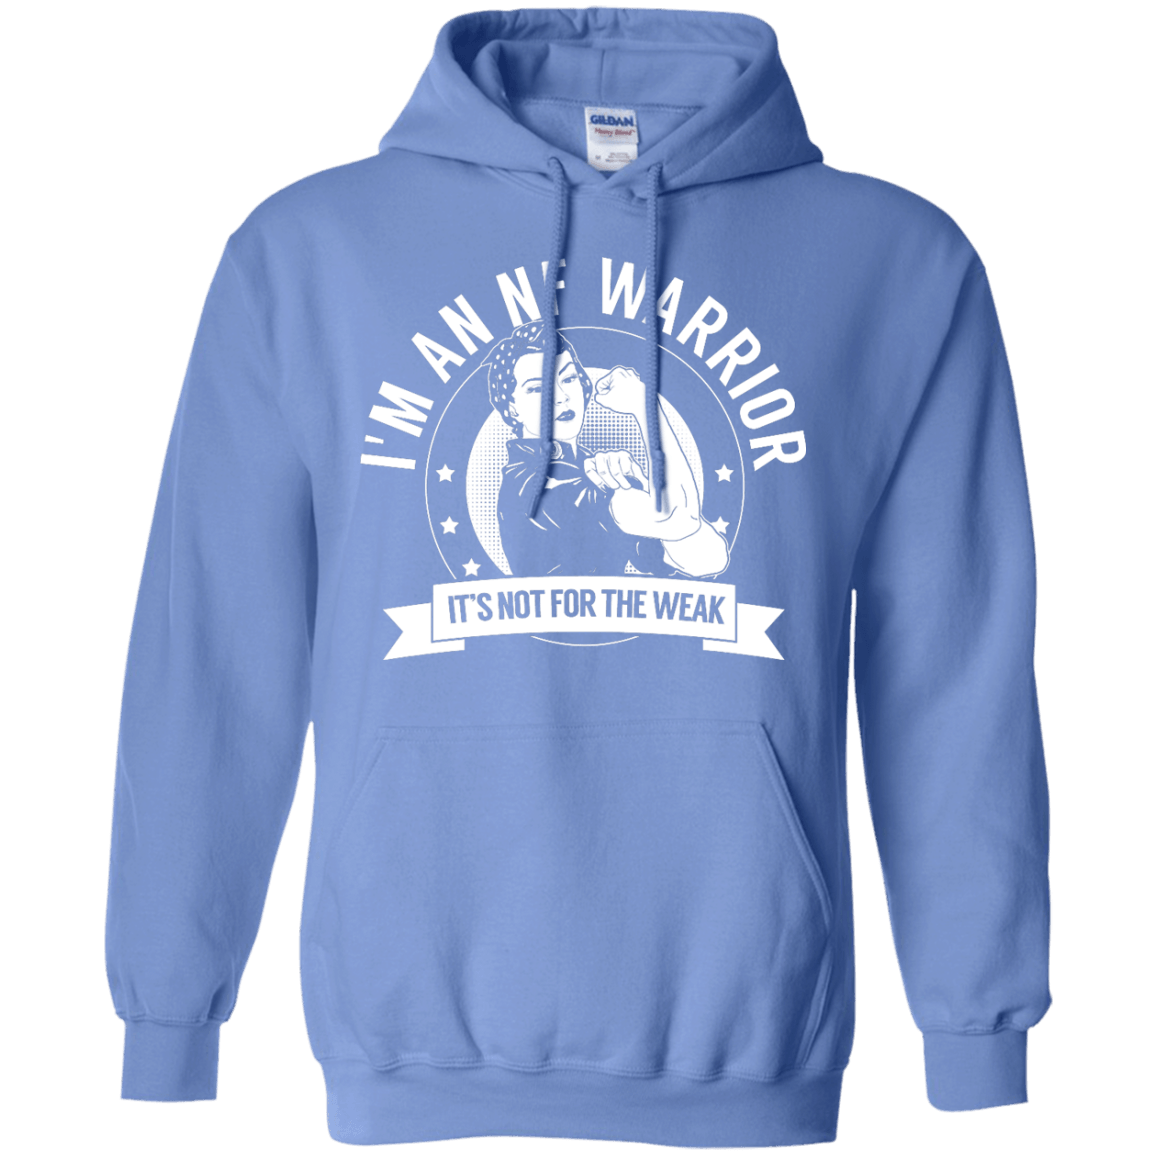 Sweatshirts - Neurofibromatosis - NF Warrior Not For The Weak Pullover Hoodie 8 Oz